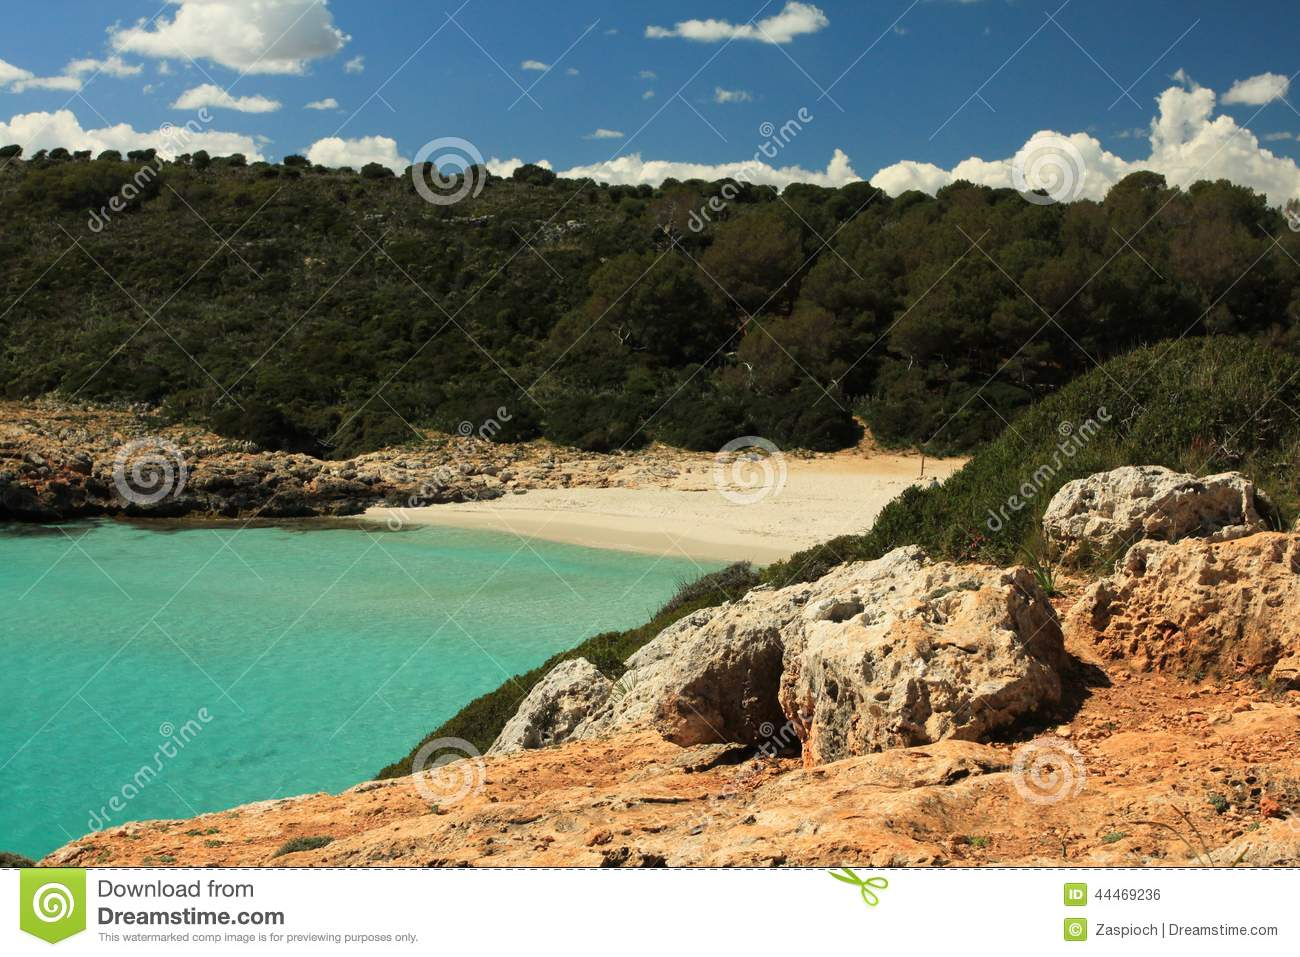 Cala Barques Natural Beach Stock Photo.